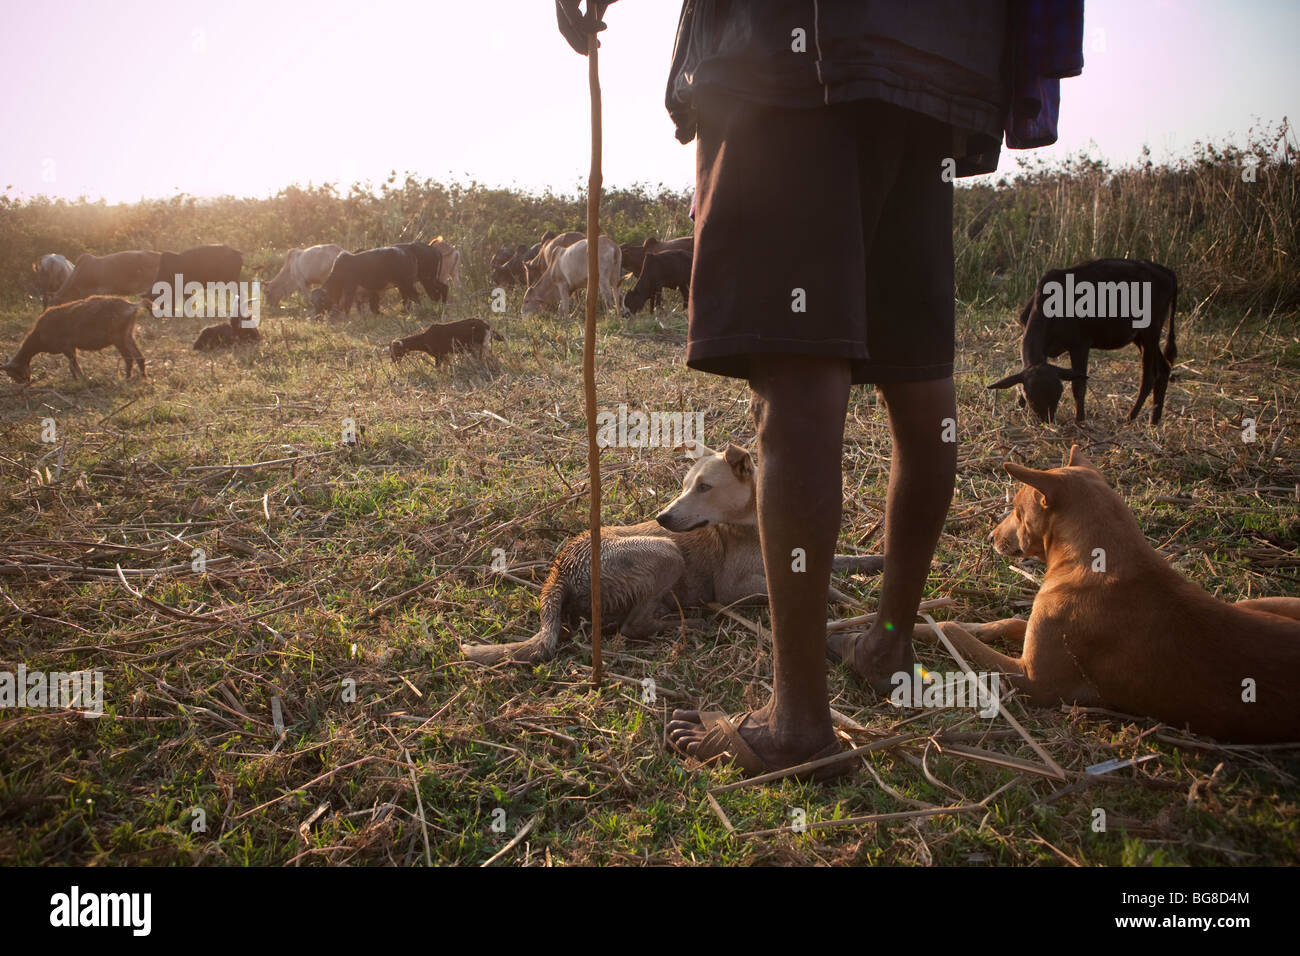 A shepherd watches over his herd of cows and goats on the shores of Lake Babati, Manyara Region, Tanzania. - Stock Image